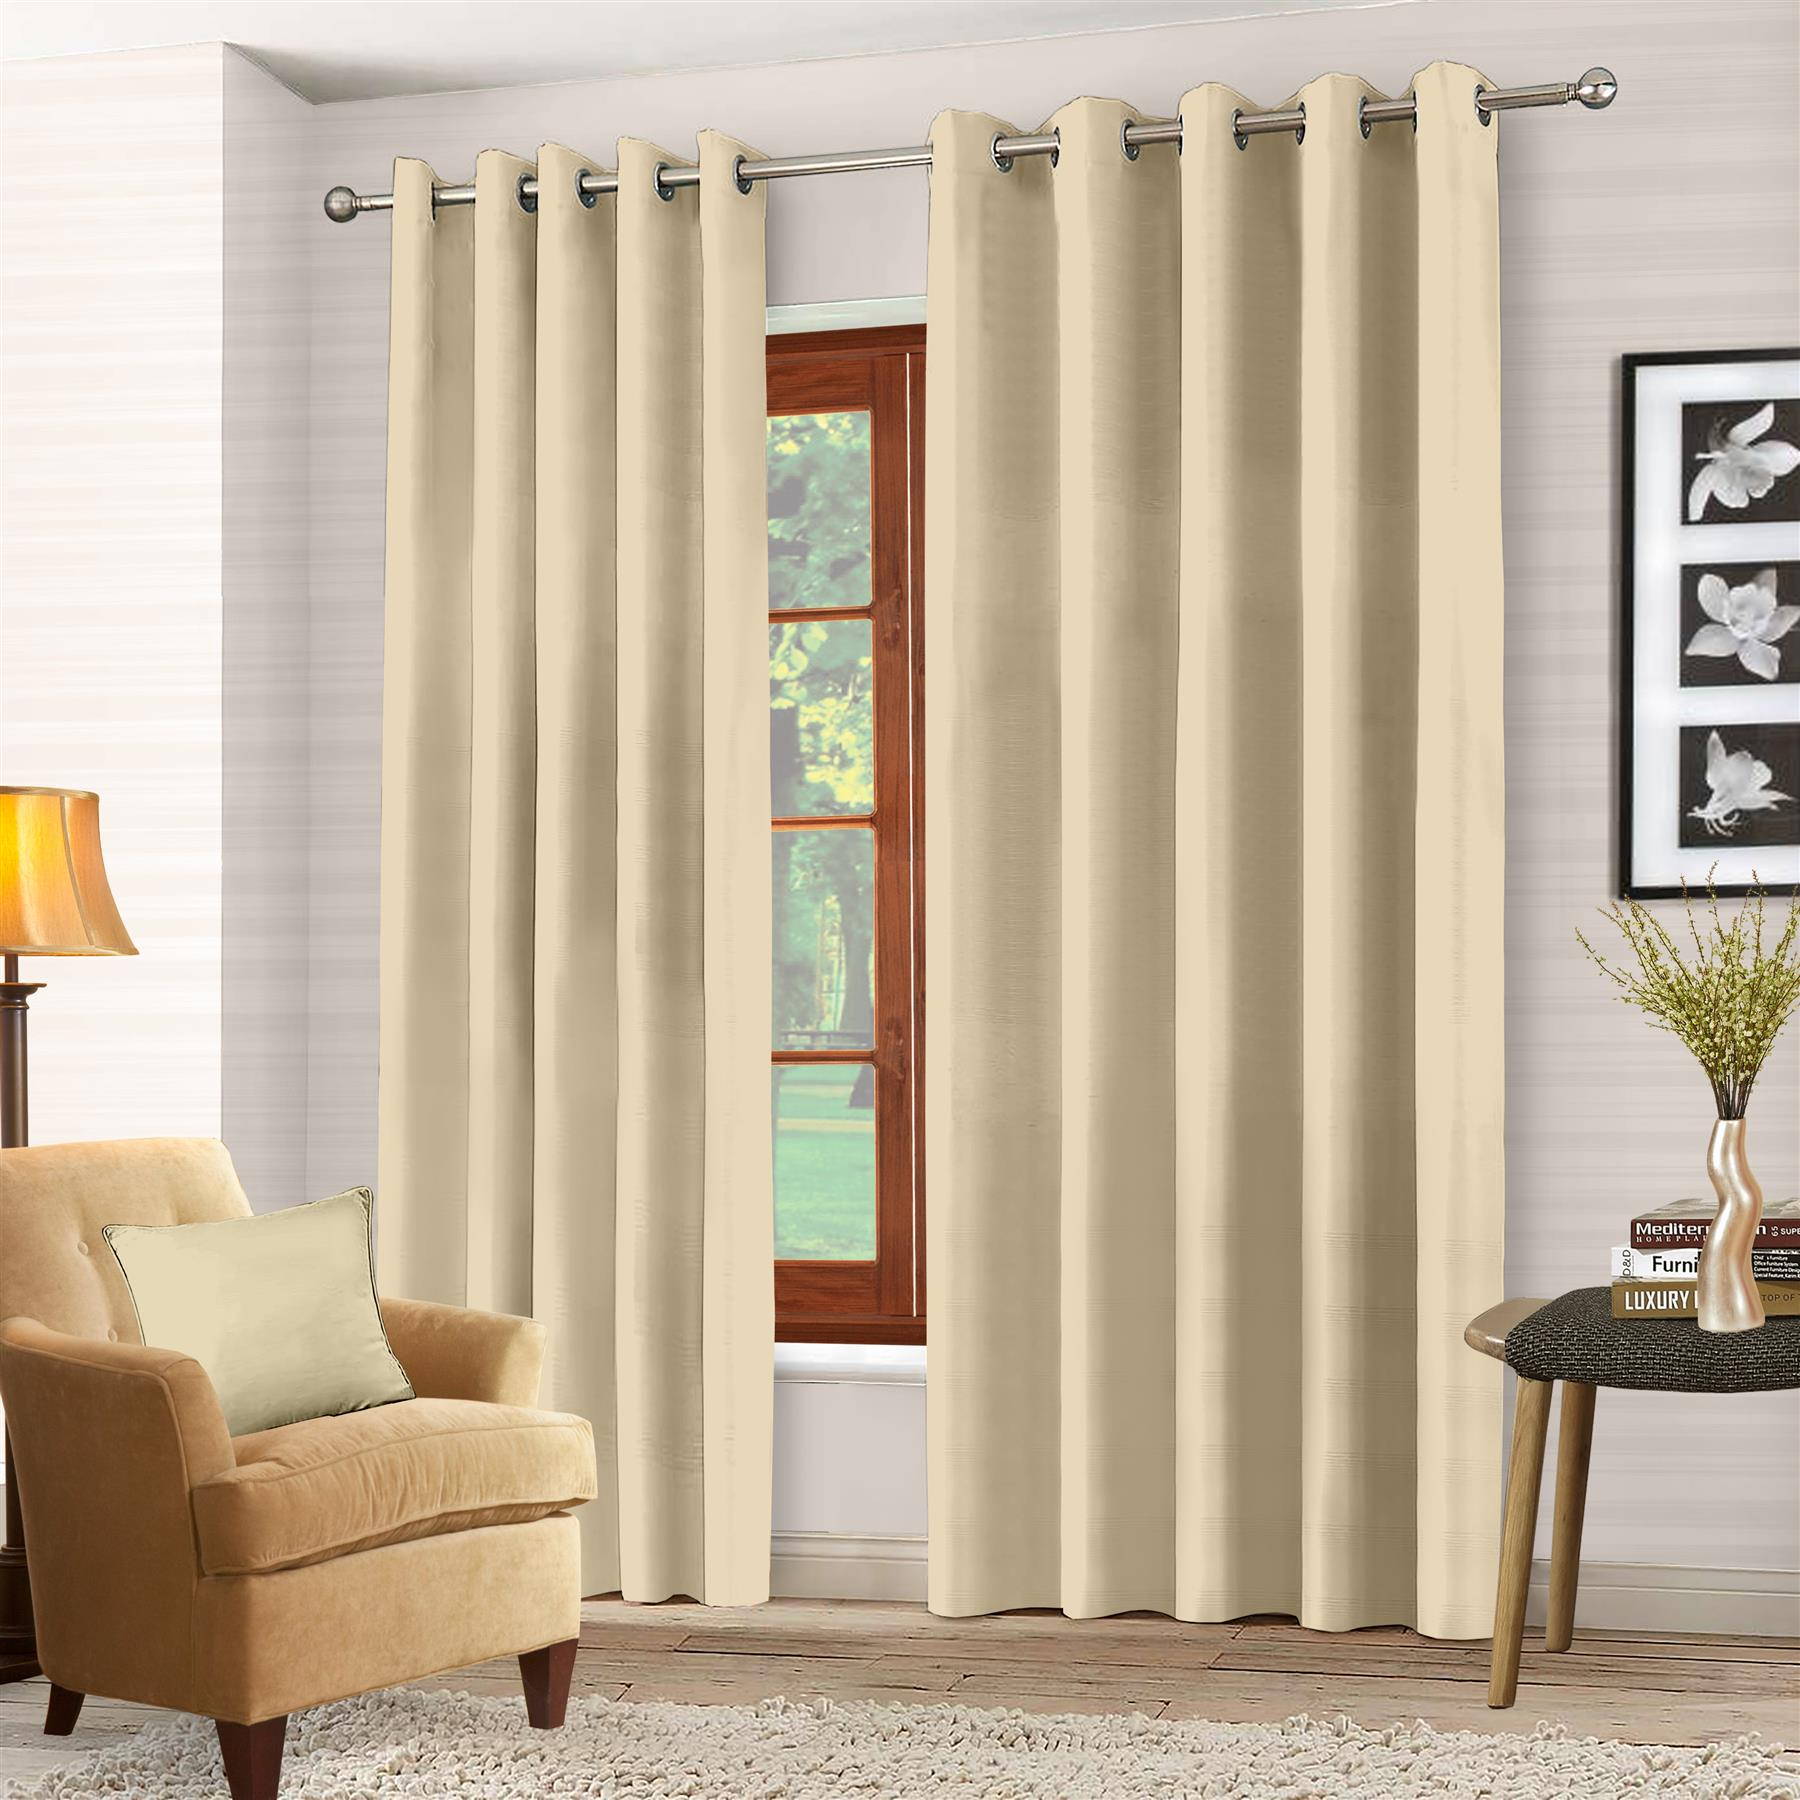 Luxury-Thermal-Blackout-Eyelet-Ring-Top-Curtains-Pair-with-tie-backs thumbnail 23